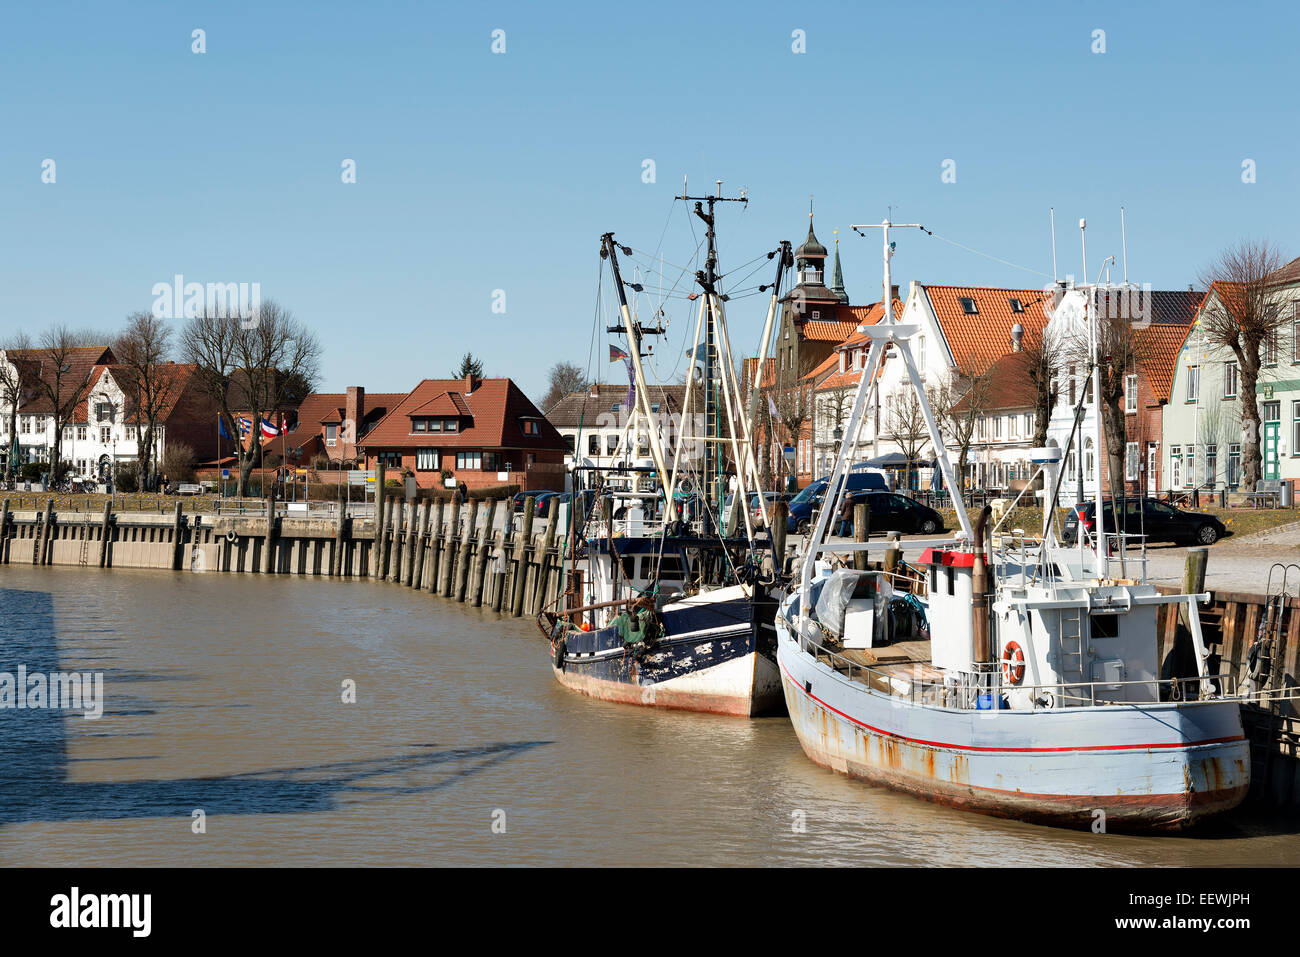 Image of two ships in the harbour of Toenning in Northern Germany - Stock Image